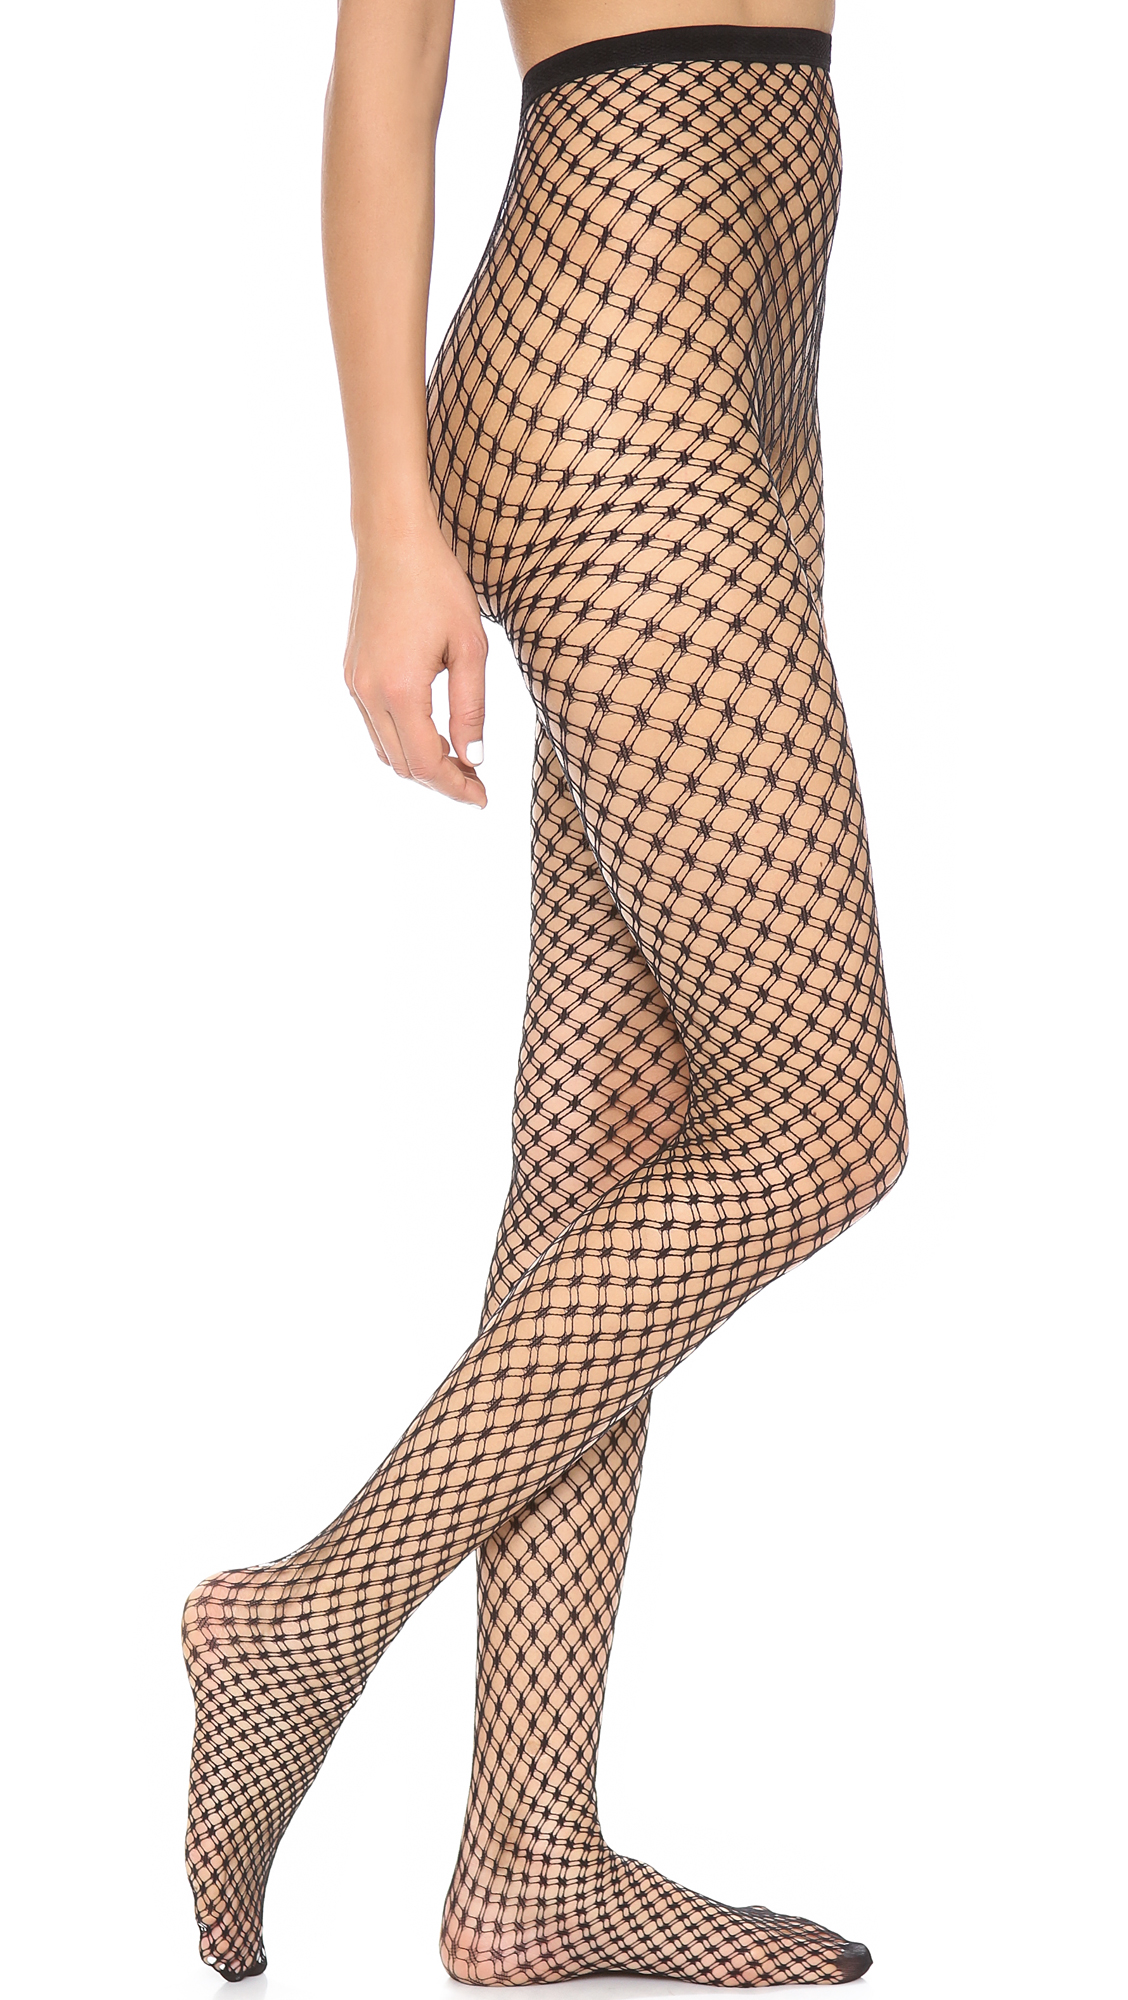 ff51cfe56d232 alice + olivia Super Lovely Double Fishnet Tights | SHOPBOP